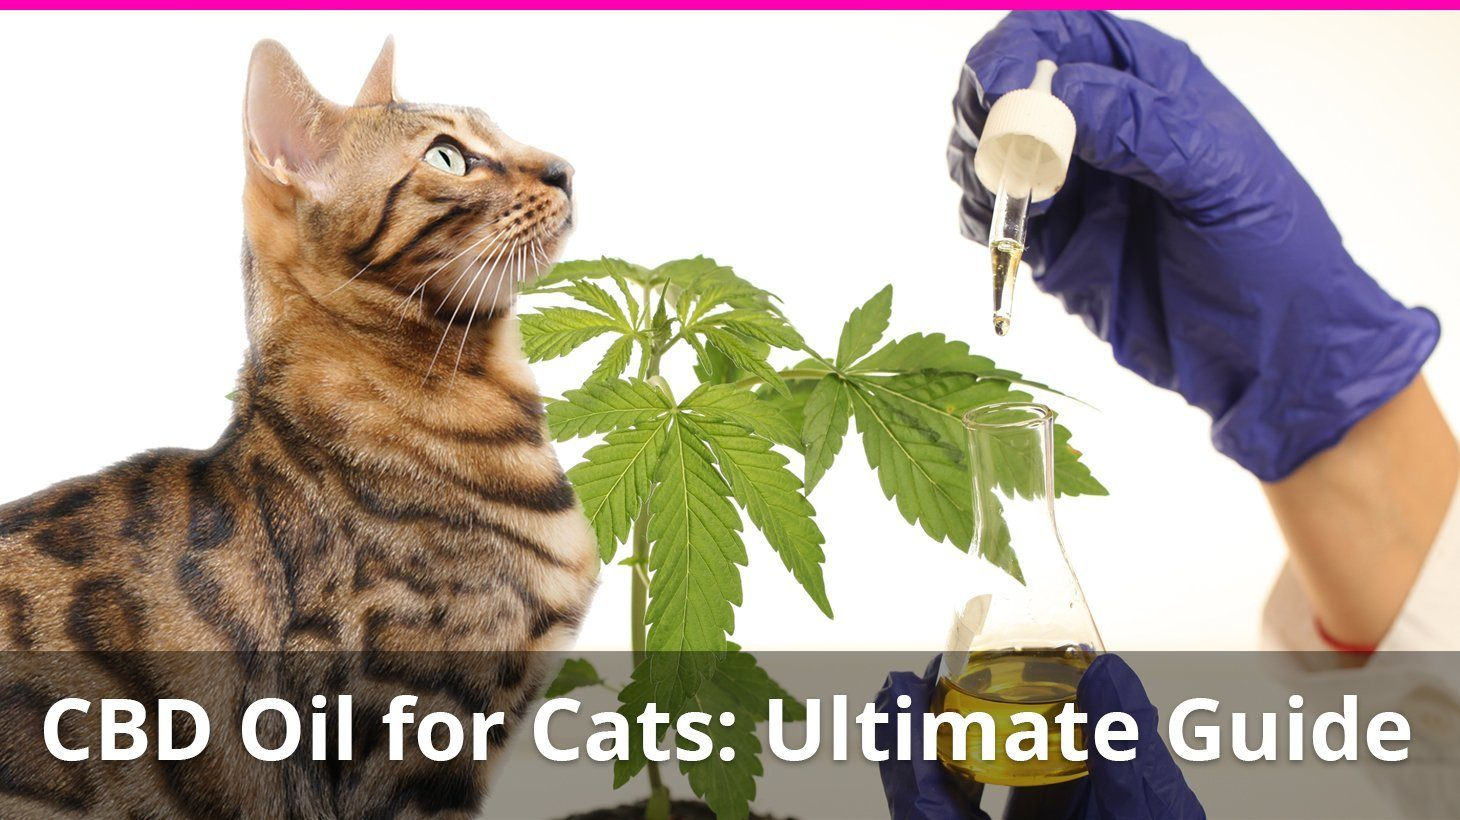 CBD Oil for Cats: The Ultimate Guide with Expert